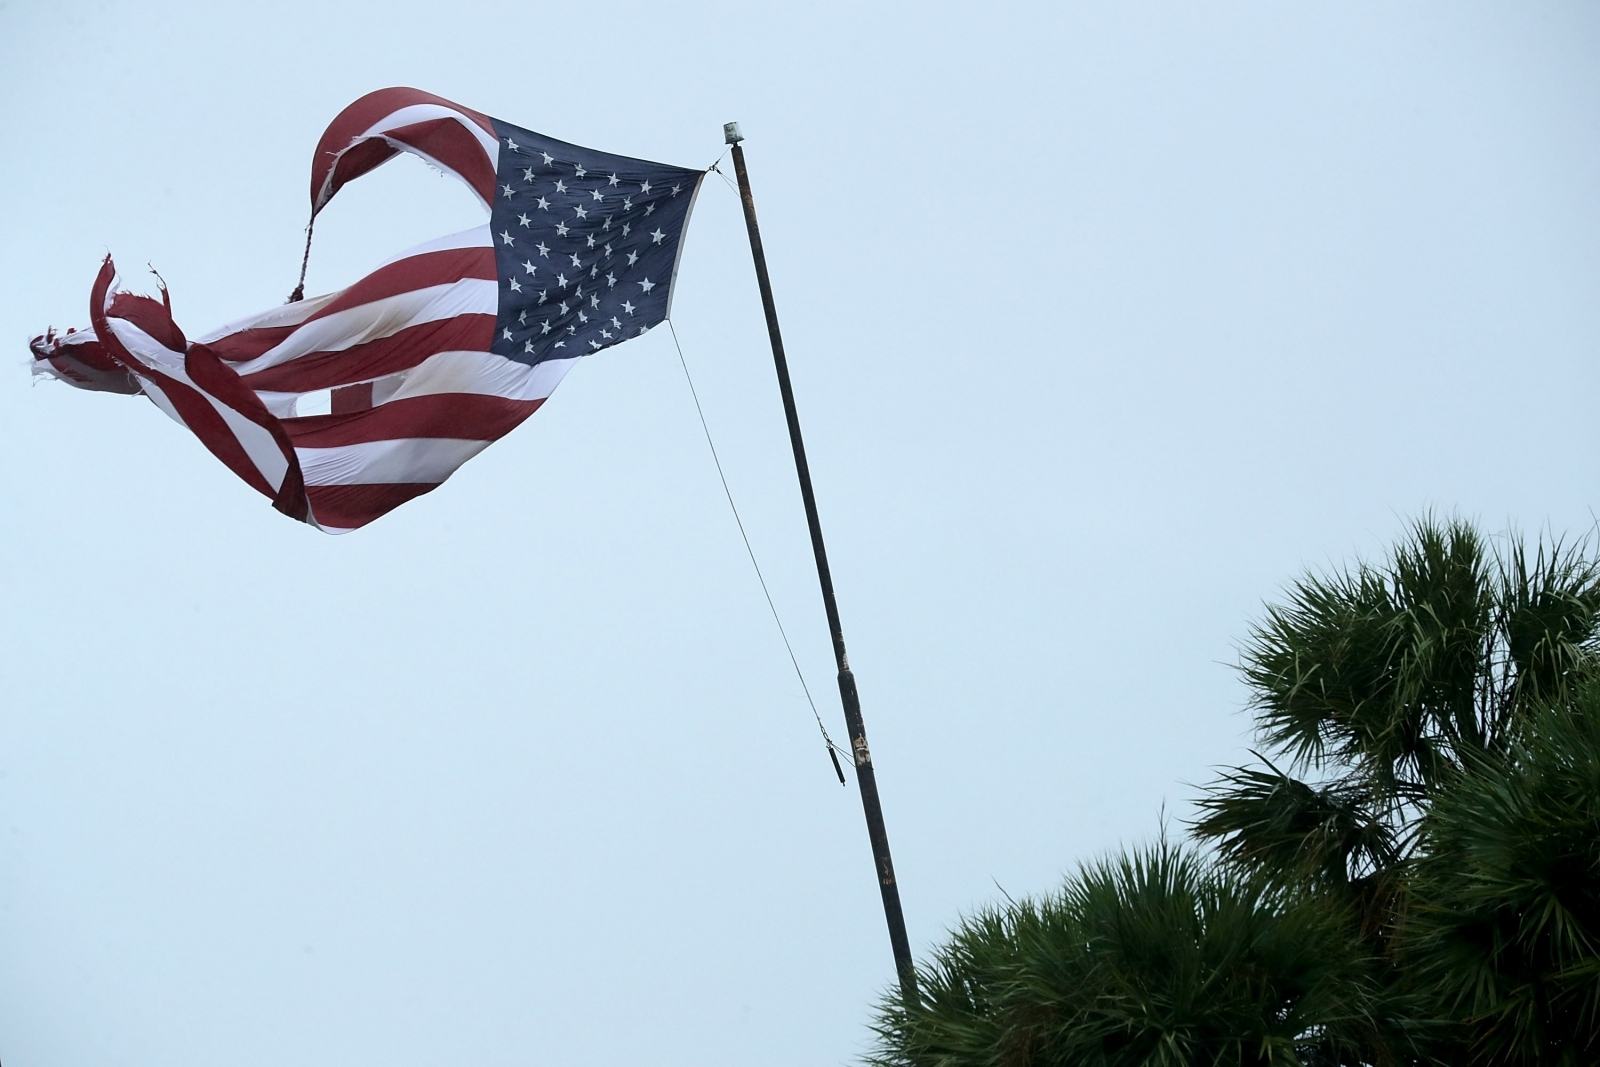 US flag ripped by Hurricane Irma